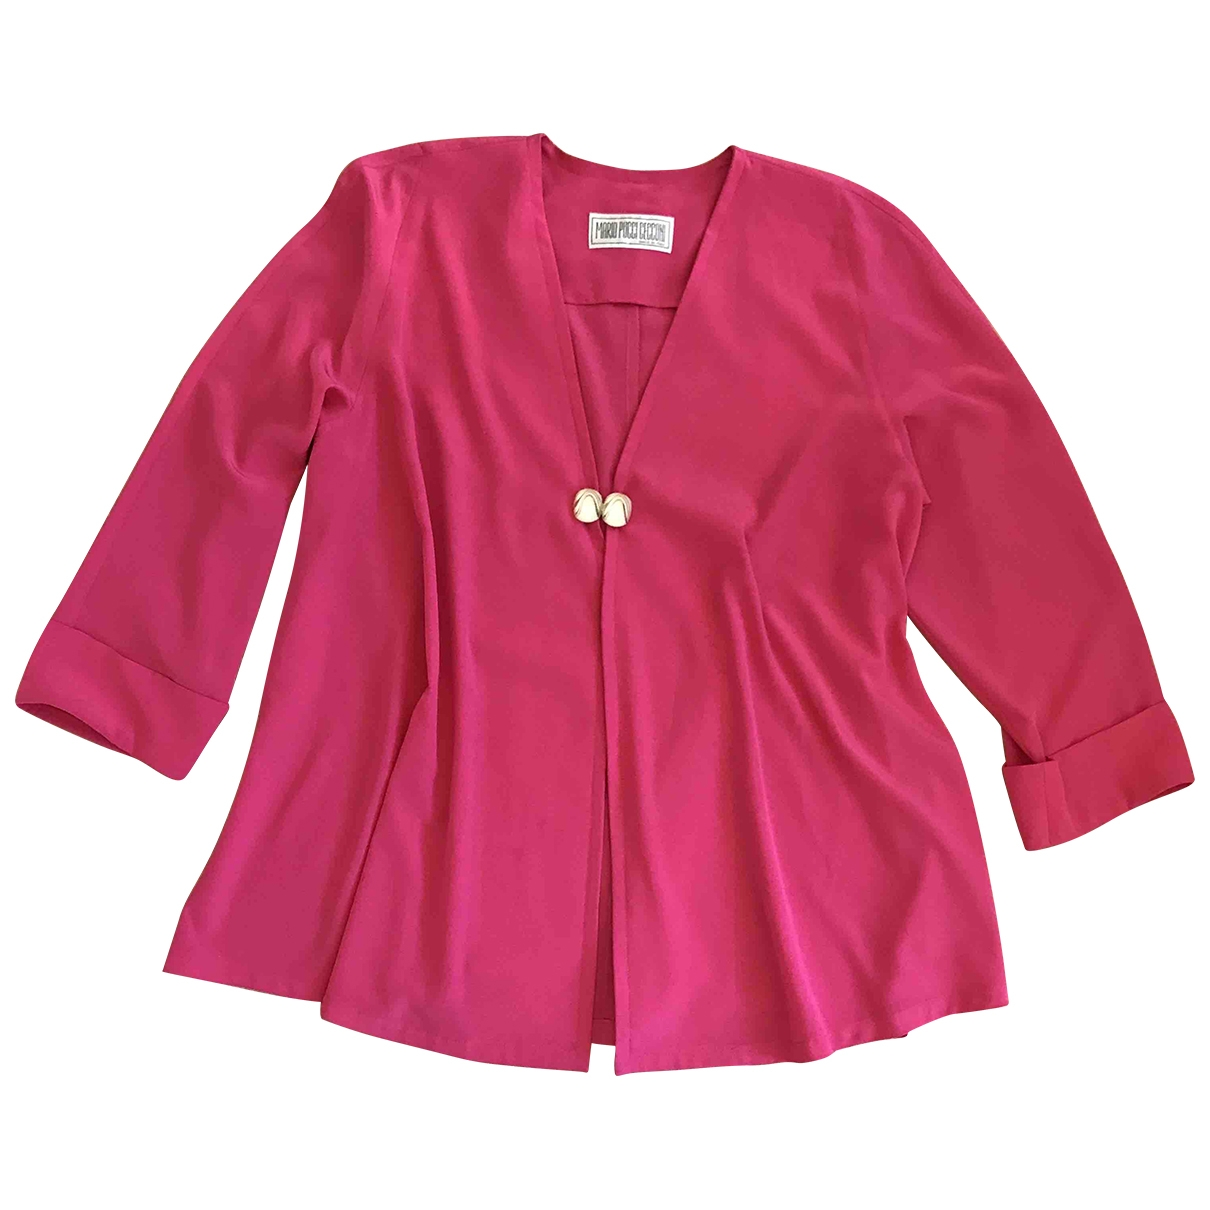 Non Signé / Unsigned \N jacket for Women One Size IT